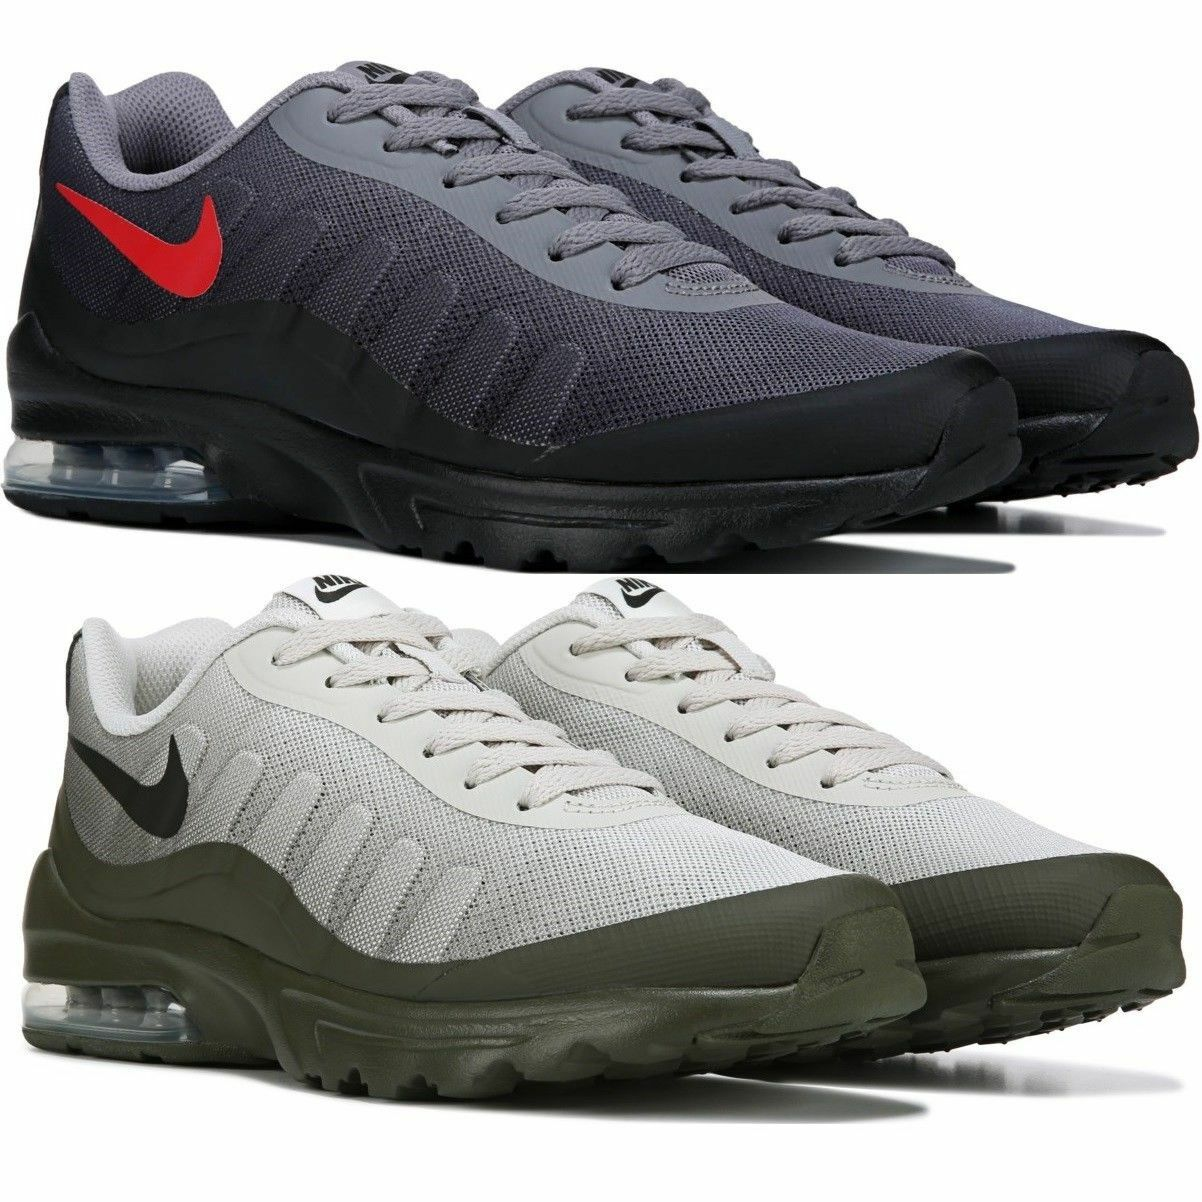 189f062c9e5 NIKE AIR MAX INVIGOR MEN S RUNNING SHOES BREATHABLE LIFESTYLE LIFESTYLE  LIFESTYLE COMFY SNEAKERS 7a1e5b